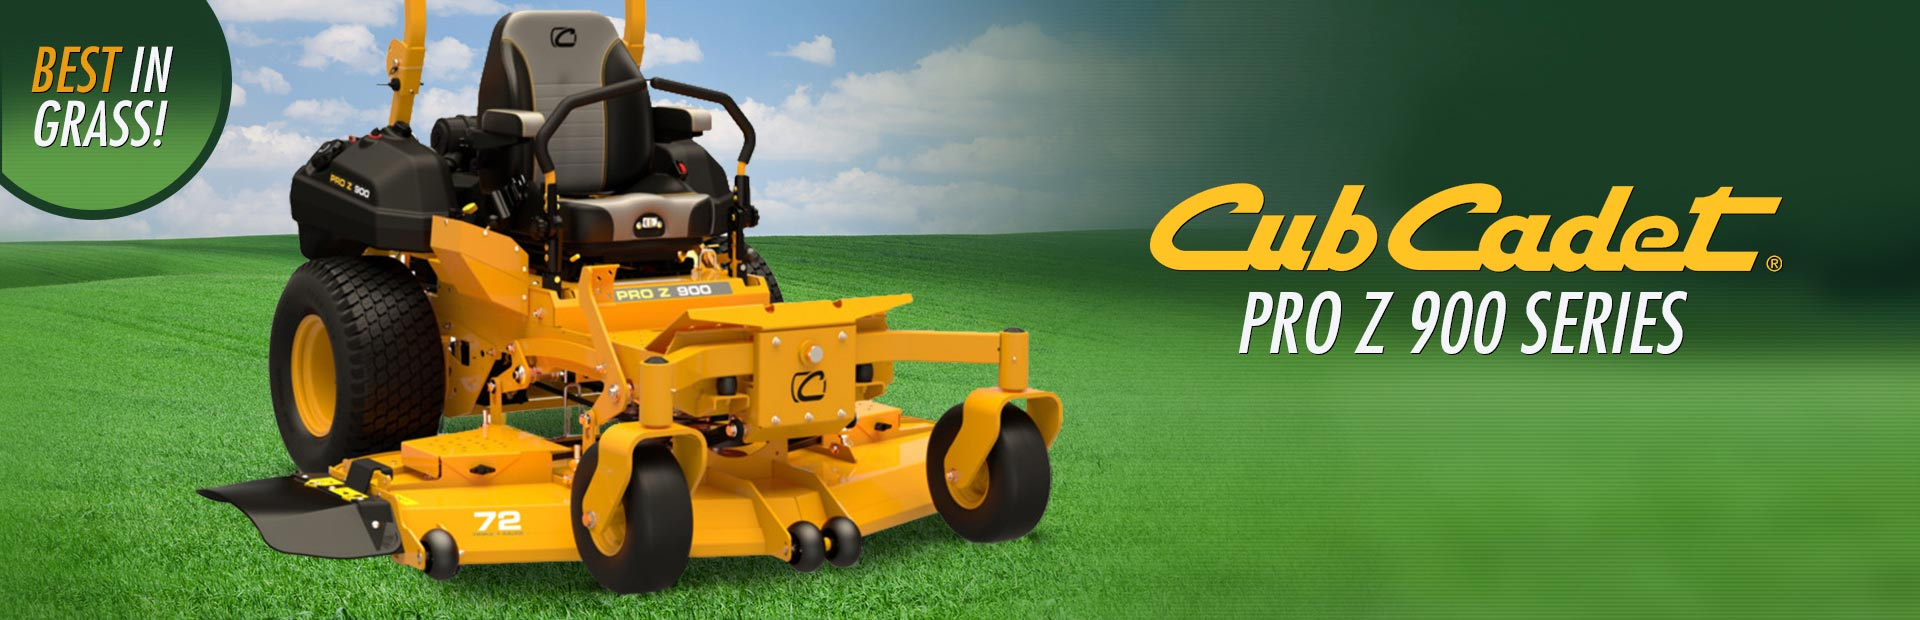 Cub Cadet PRO Z 900 Series: Click here to view the models.